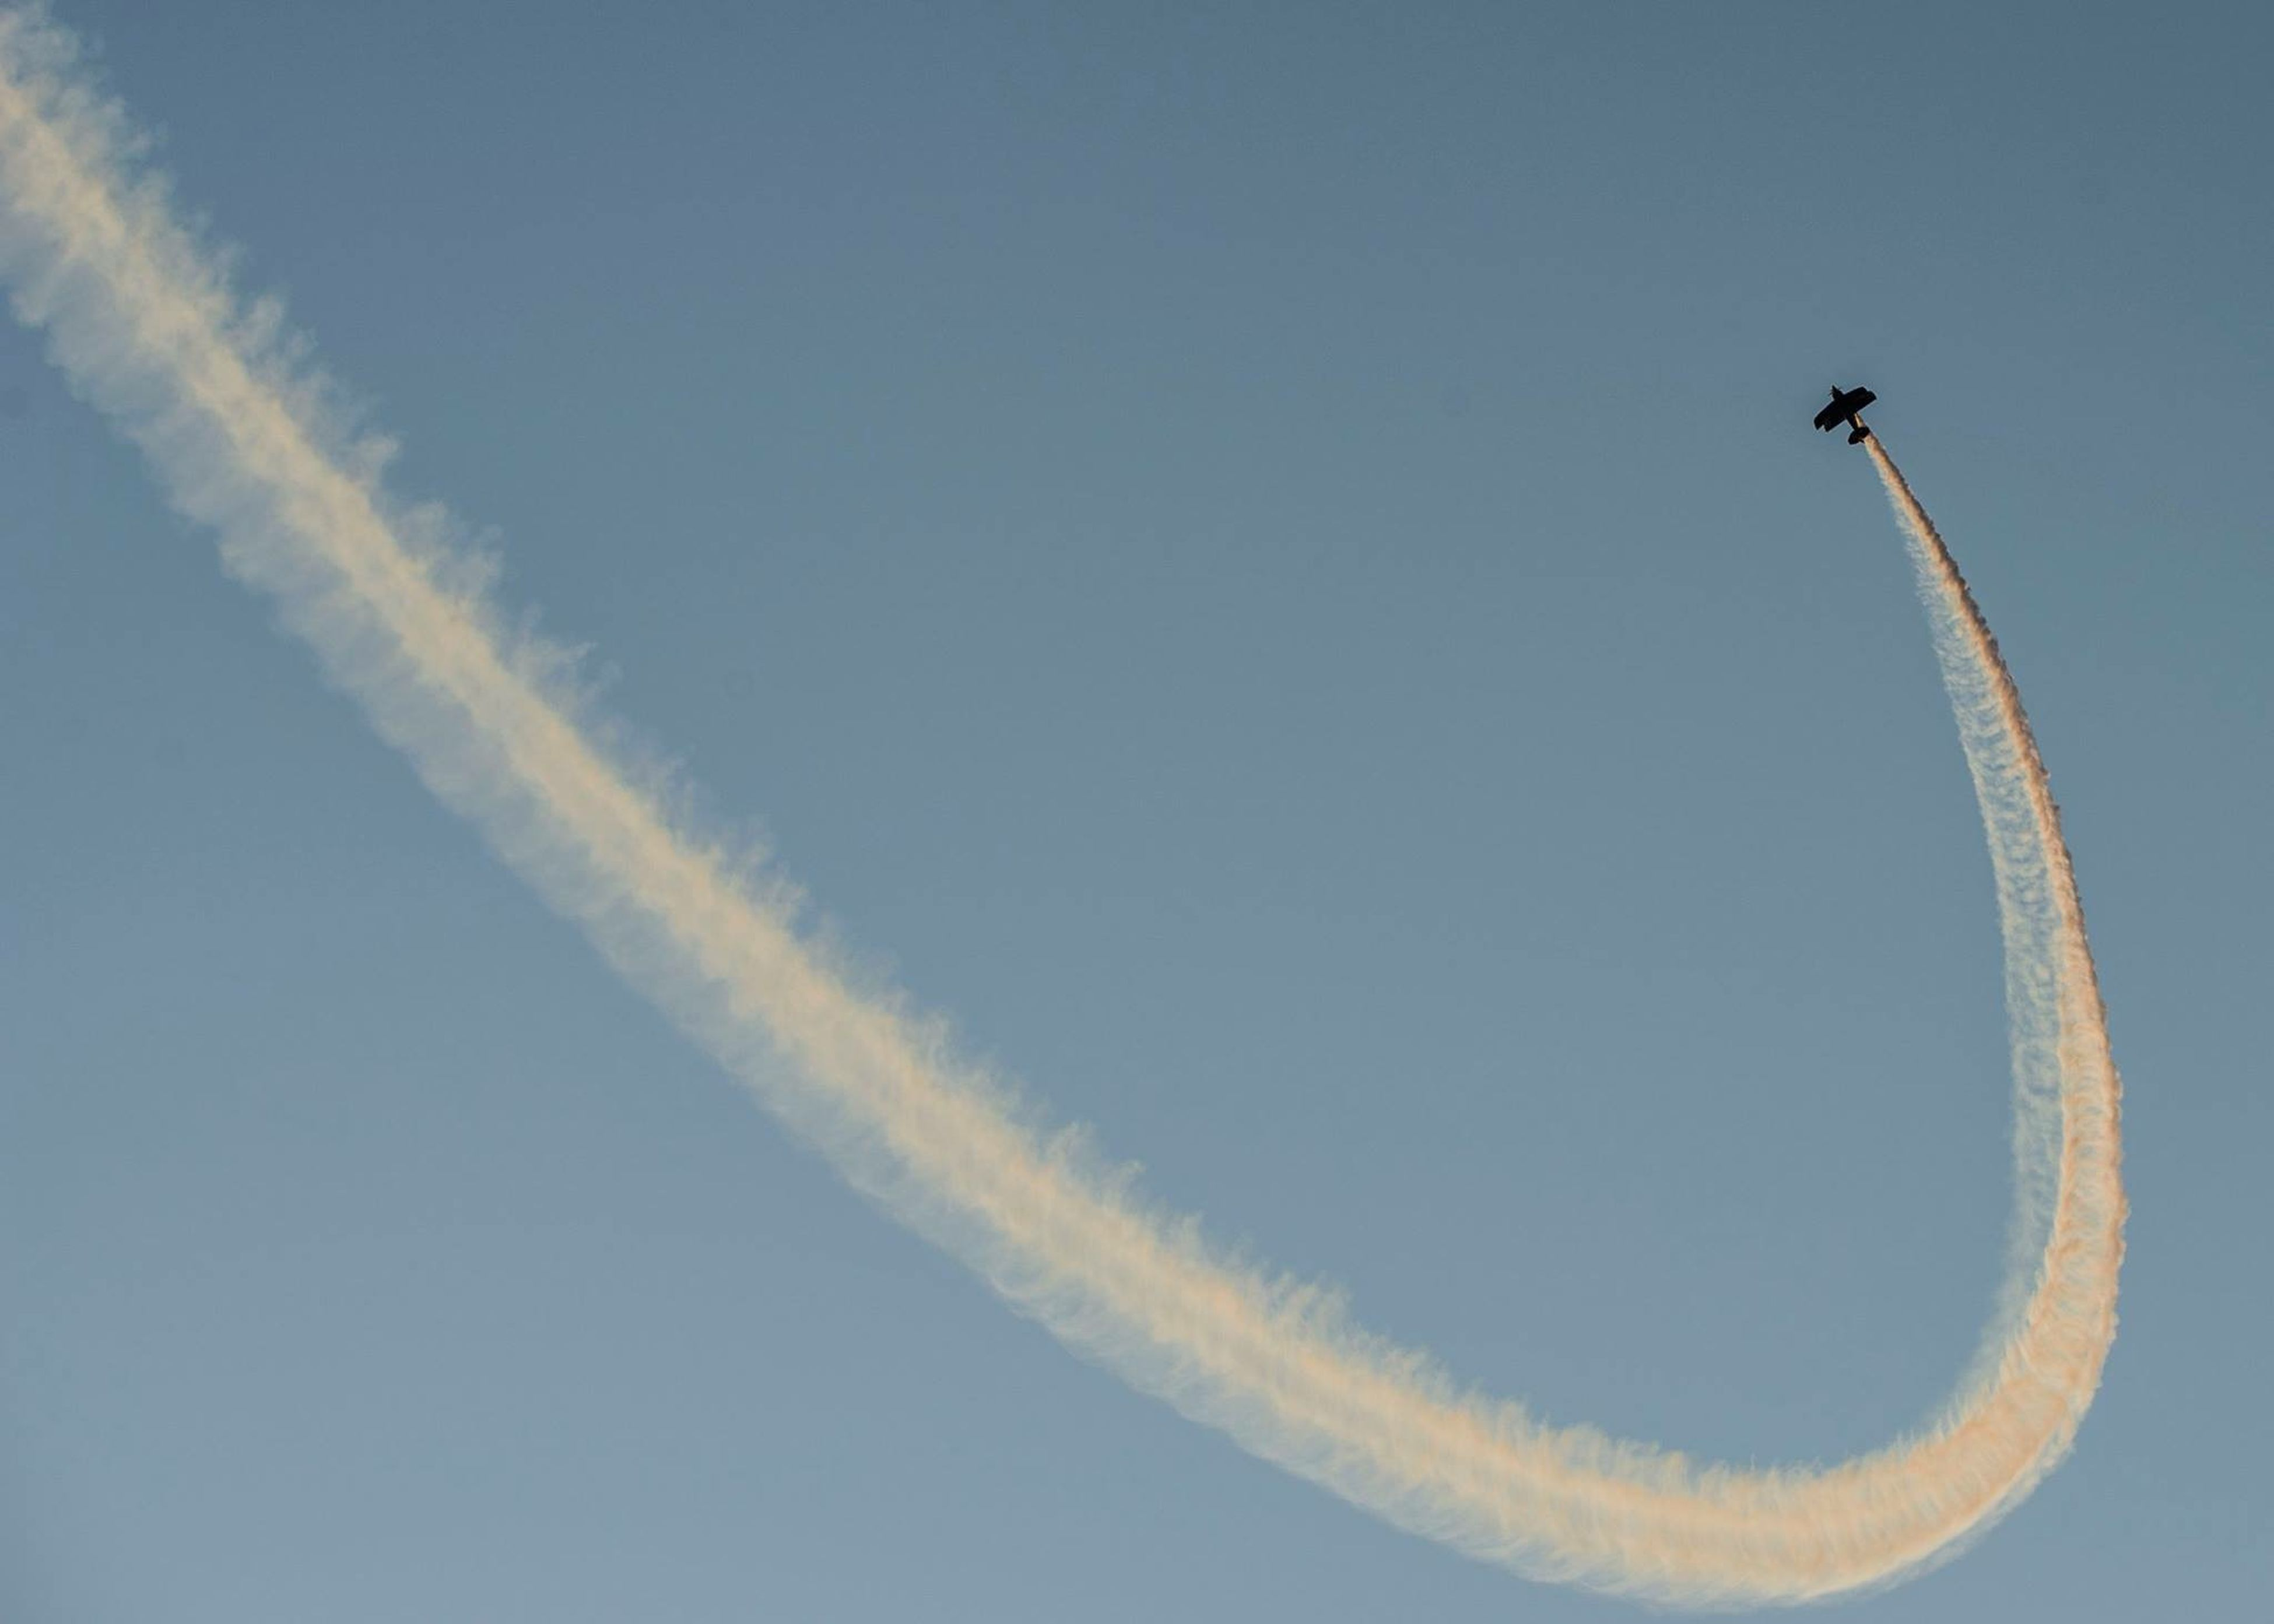 clear sky, copy space, low angle view, blue, sky, nature, motion, flying, no people, day, outdoors, speed, part of, beauty in nature, mid-air, close-up, vapor trail, tranquility, cropped, white color